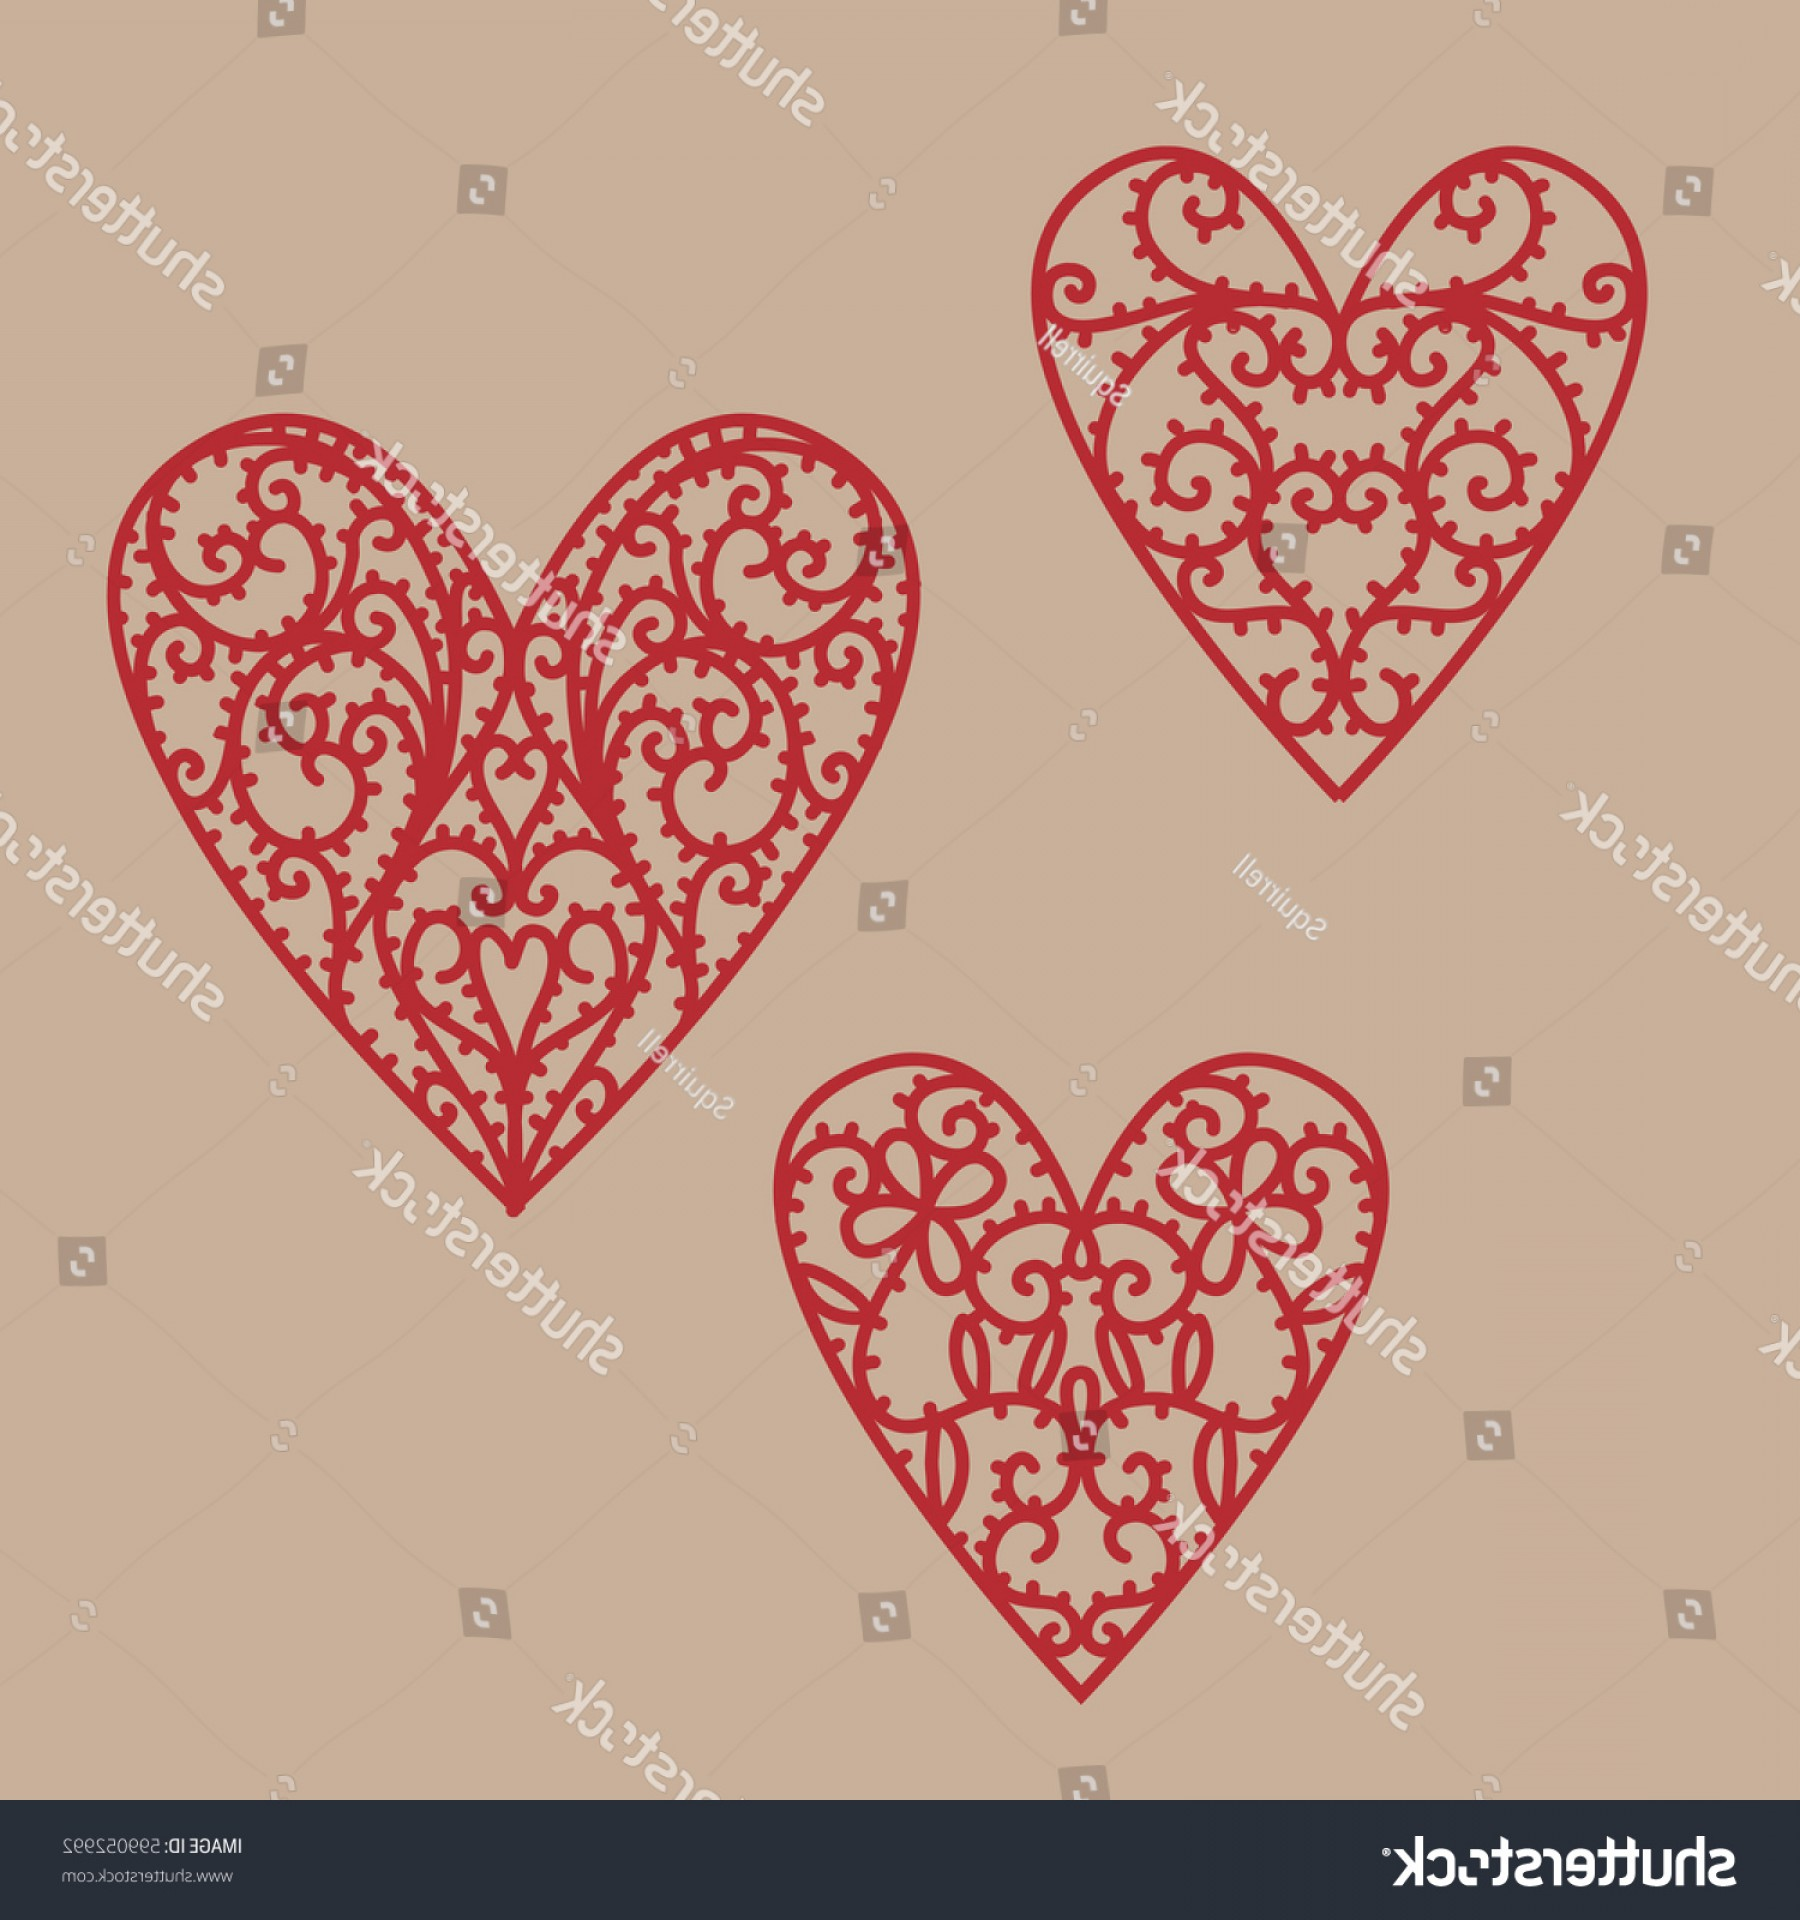 Vector Filigree Heart: Filigree Hearts Vector Drawing Doodle